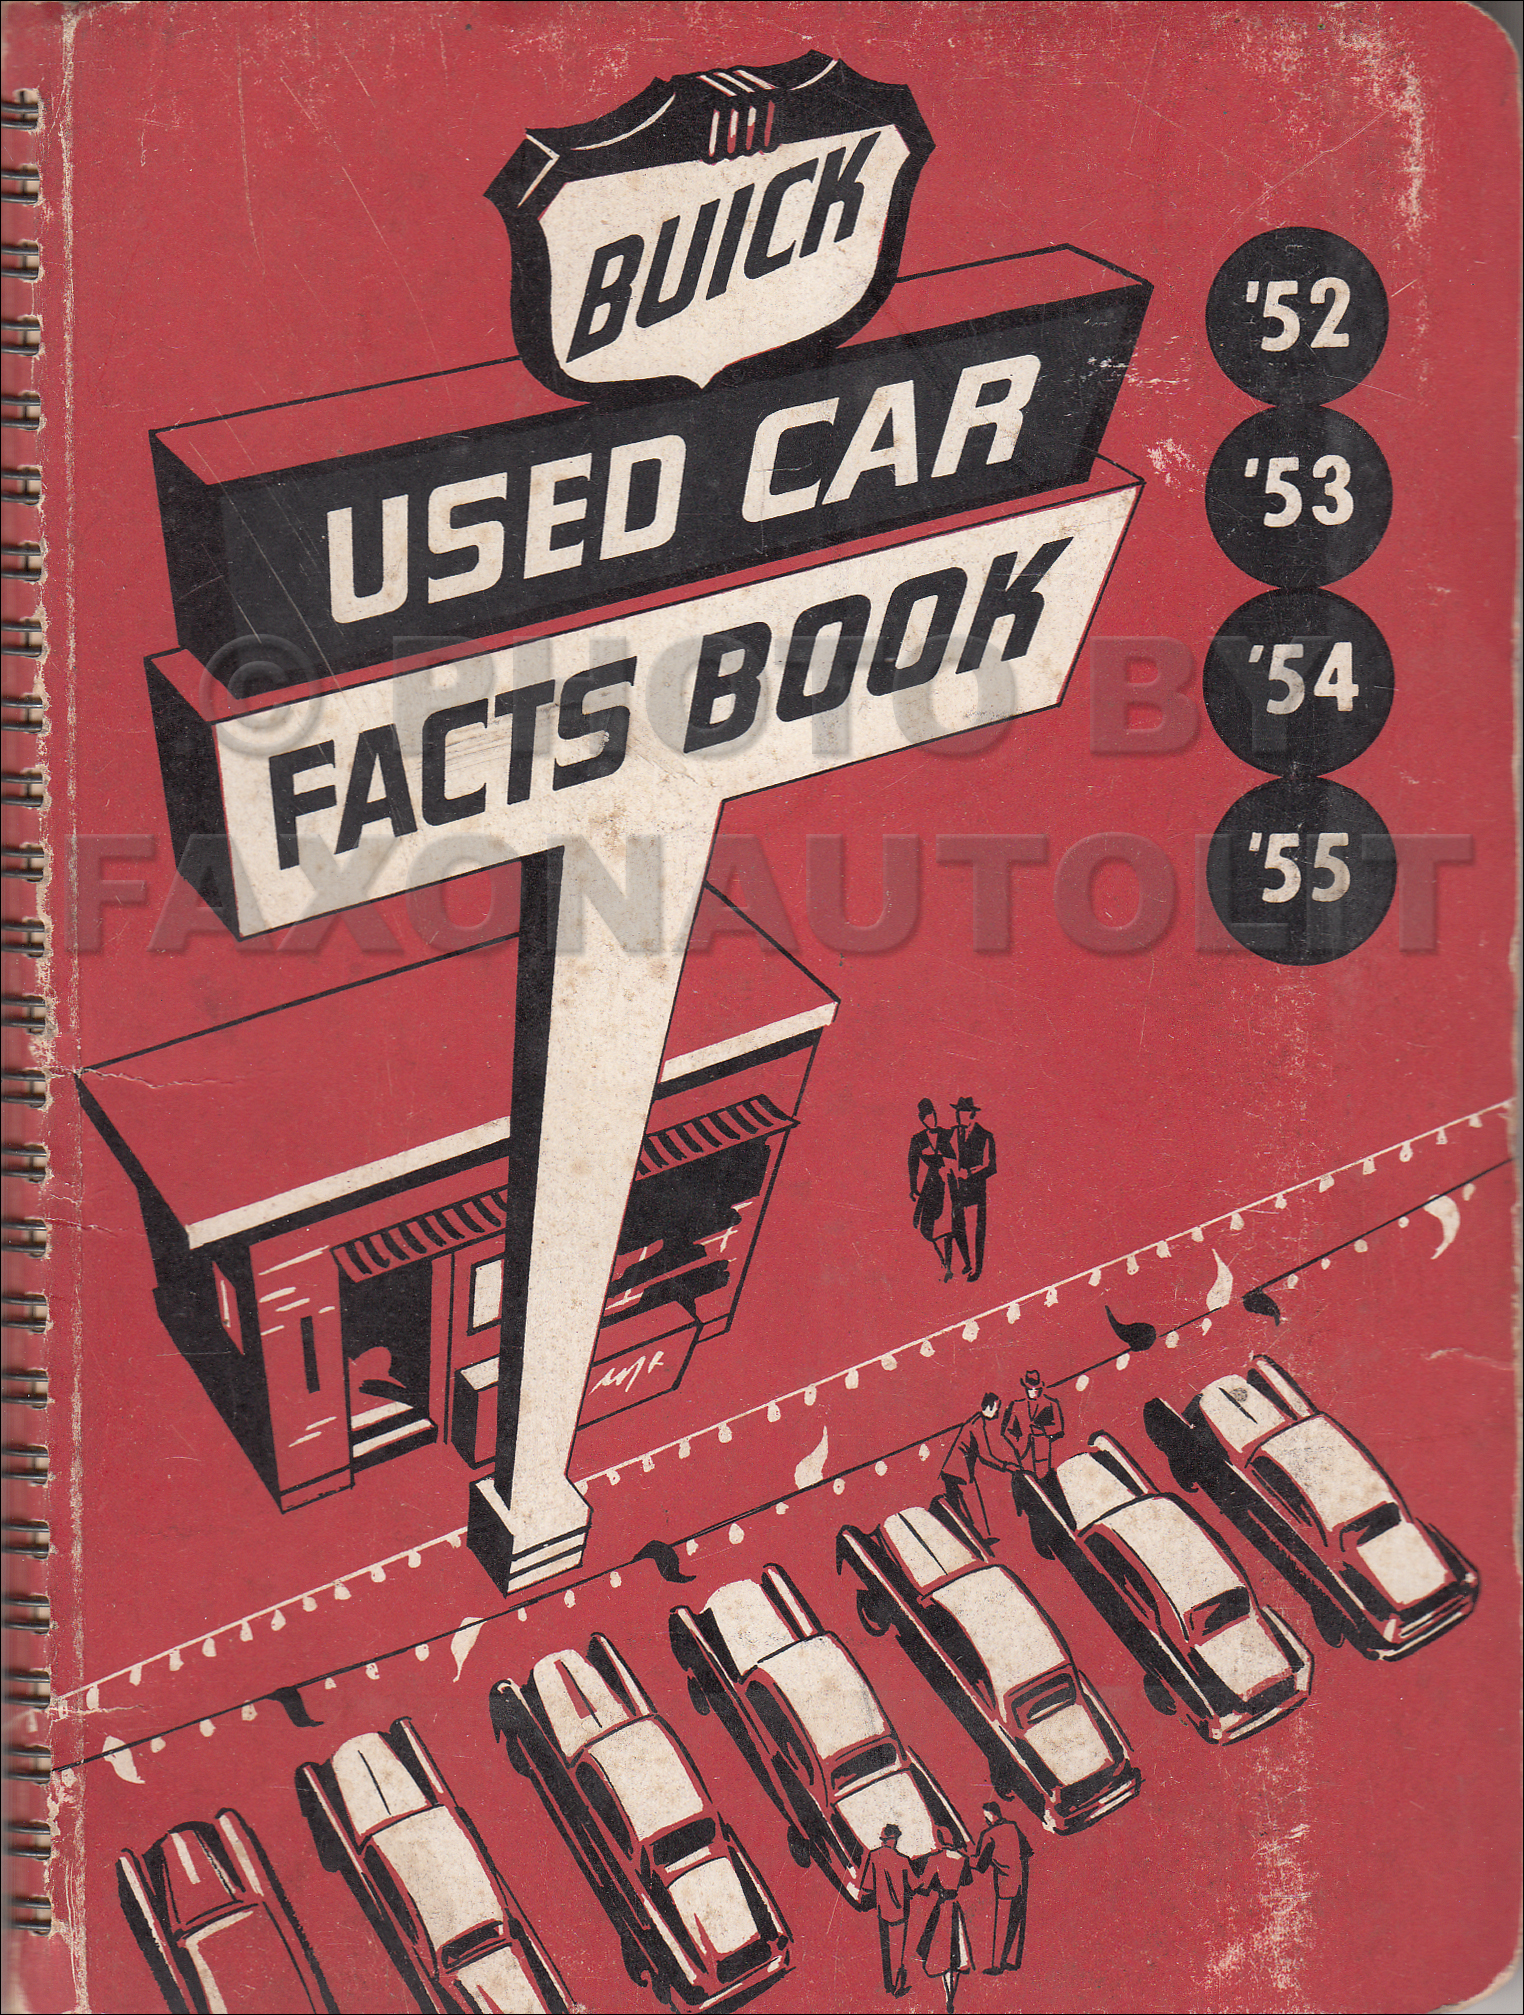 1952-1955 Buick Used Car Facts Book Original